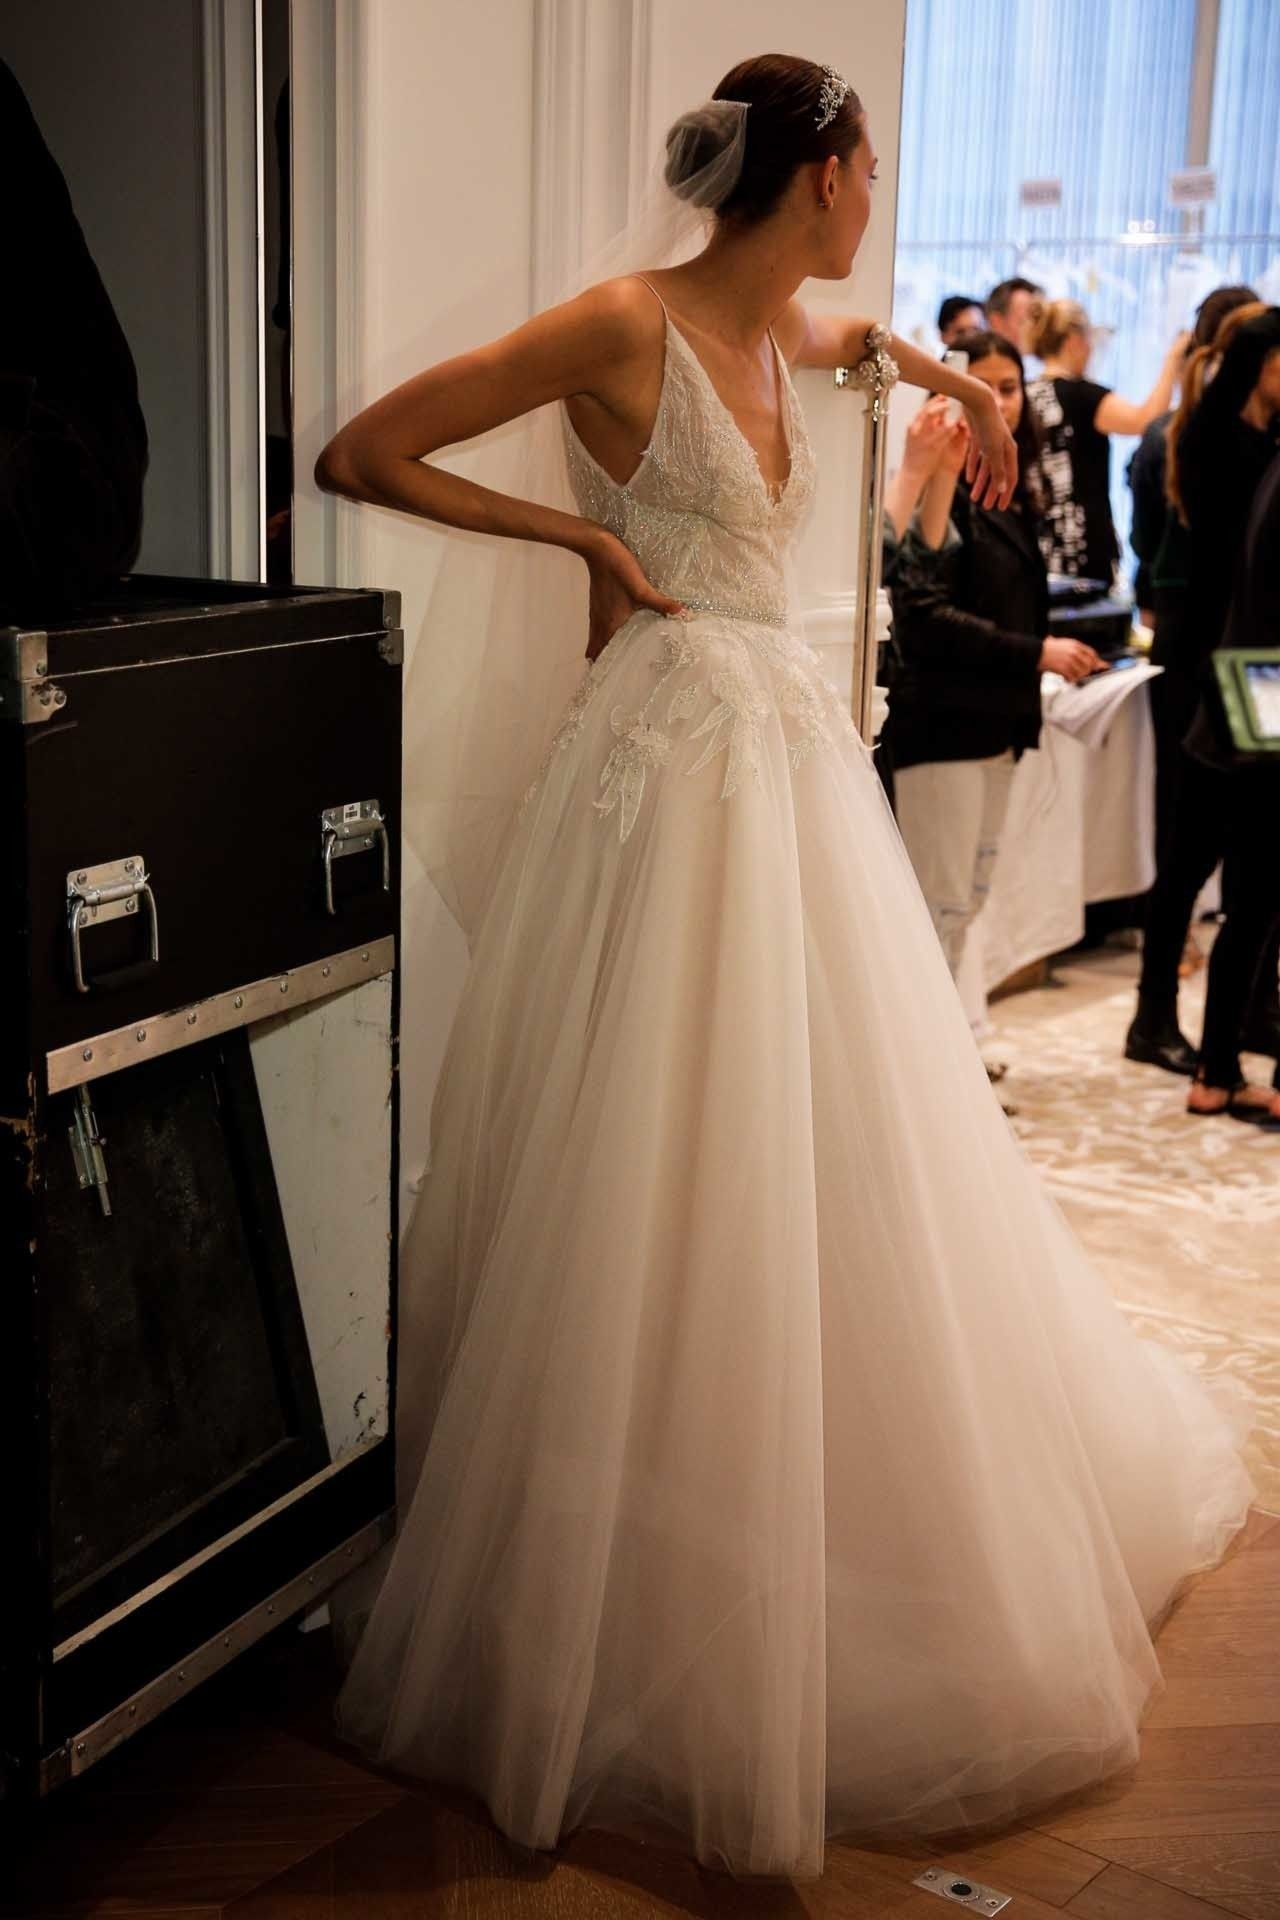 11 wedding dresses you wouldn t say no to from bridal fashion week ... db355acdcab